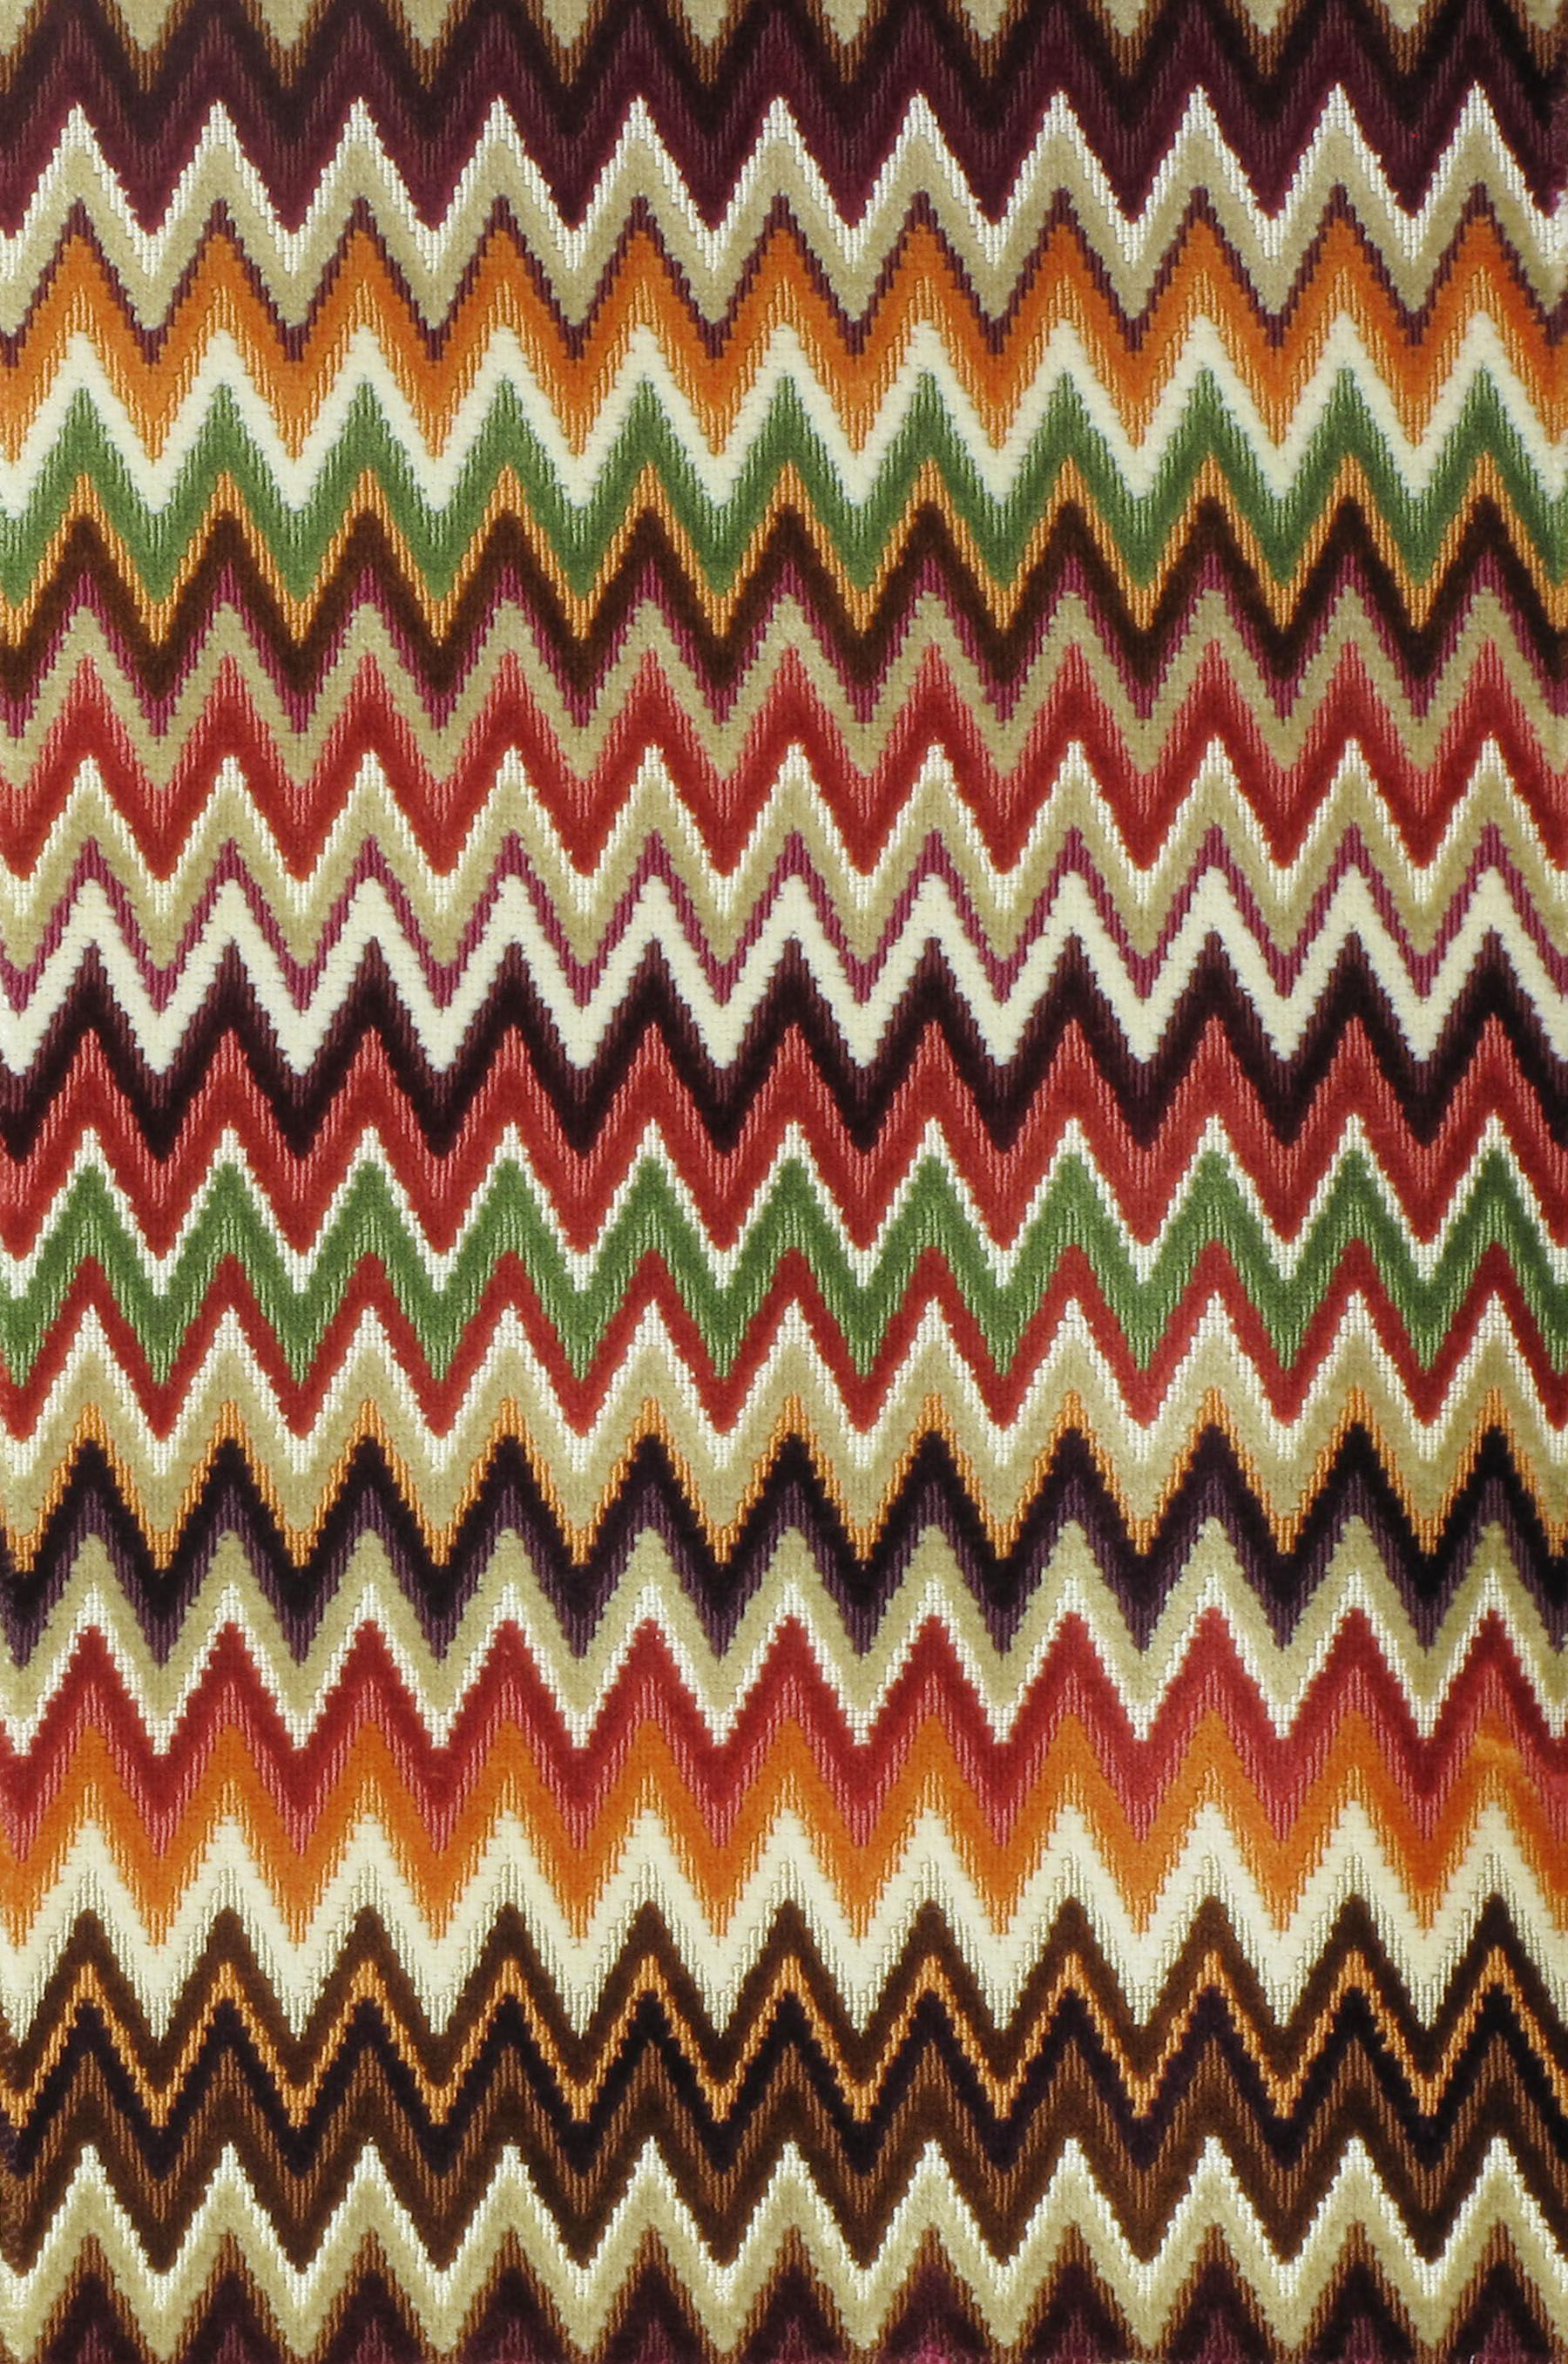 Missoni Fabric At Stark Carpet. Available At The DD Building Suite 1102  #ddbny #